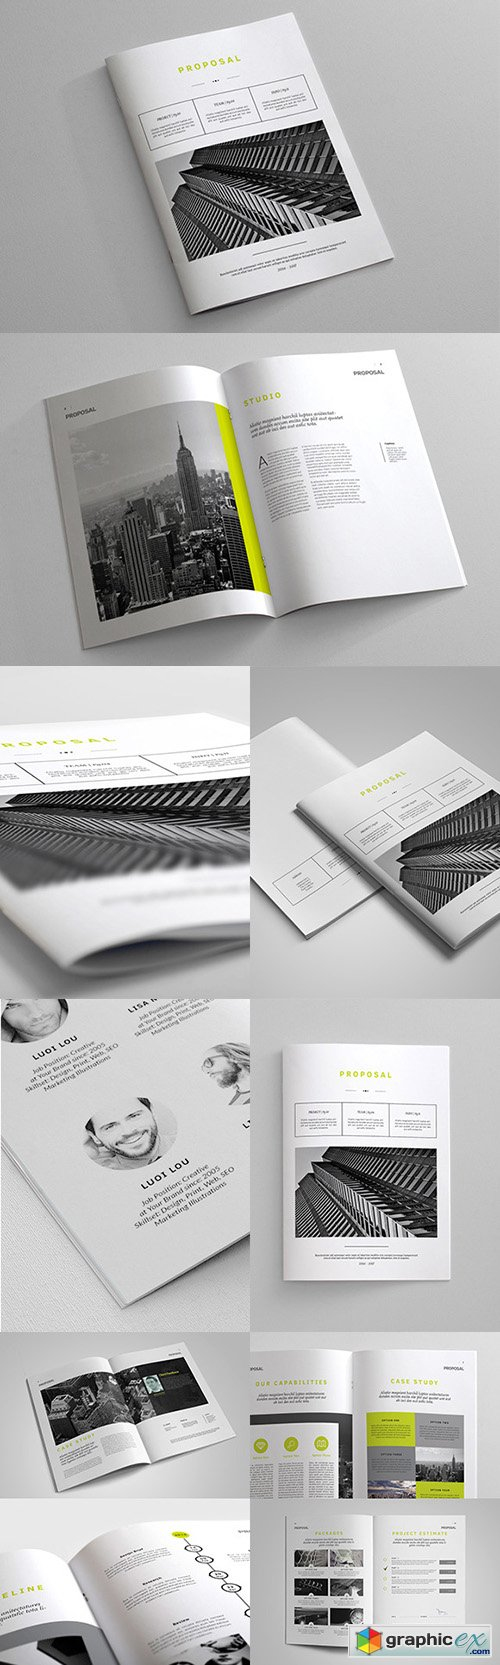 Indesign Business Proposal Template | gráfico | Pinterest